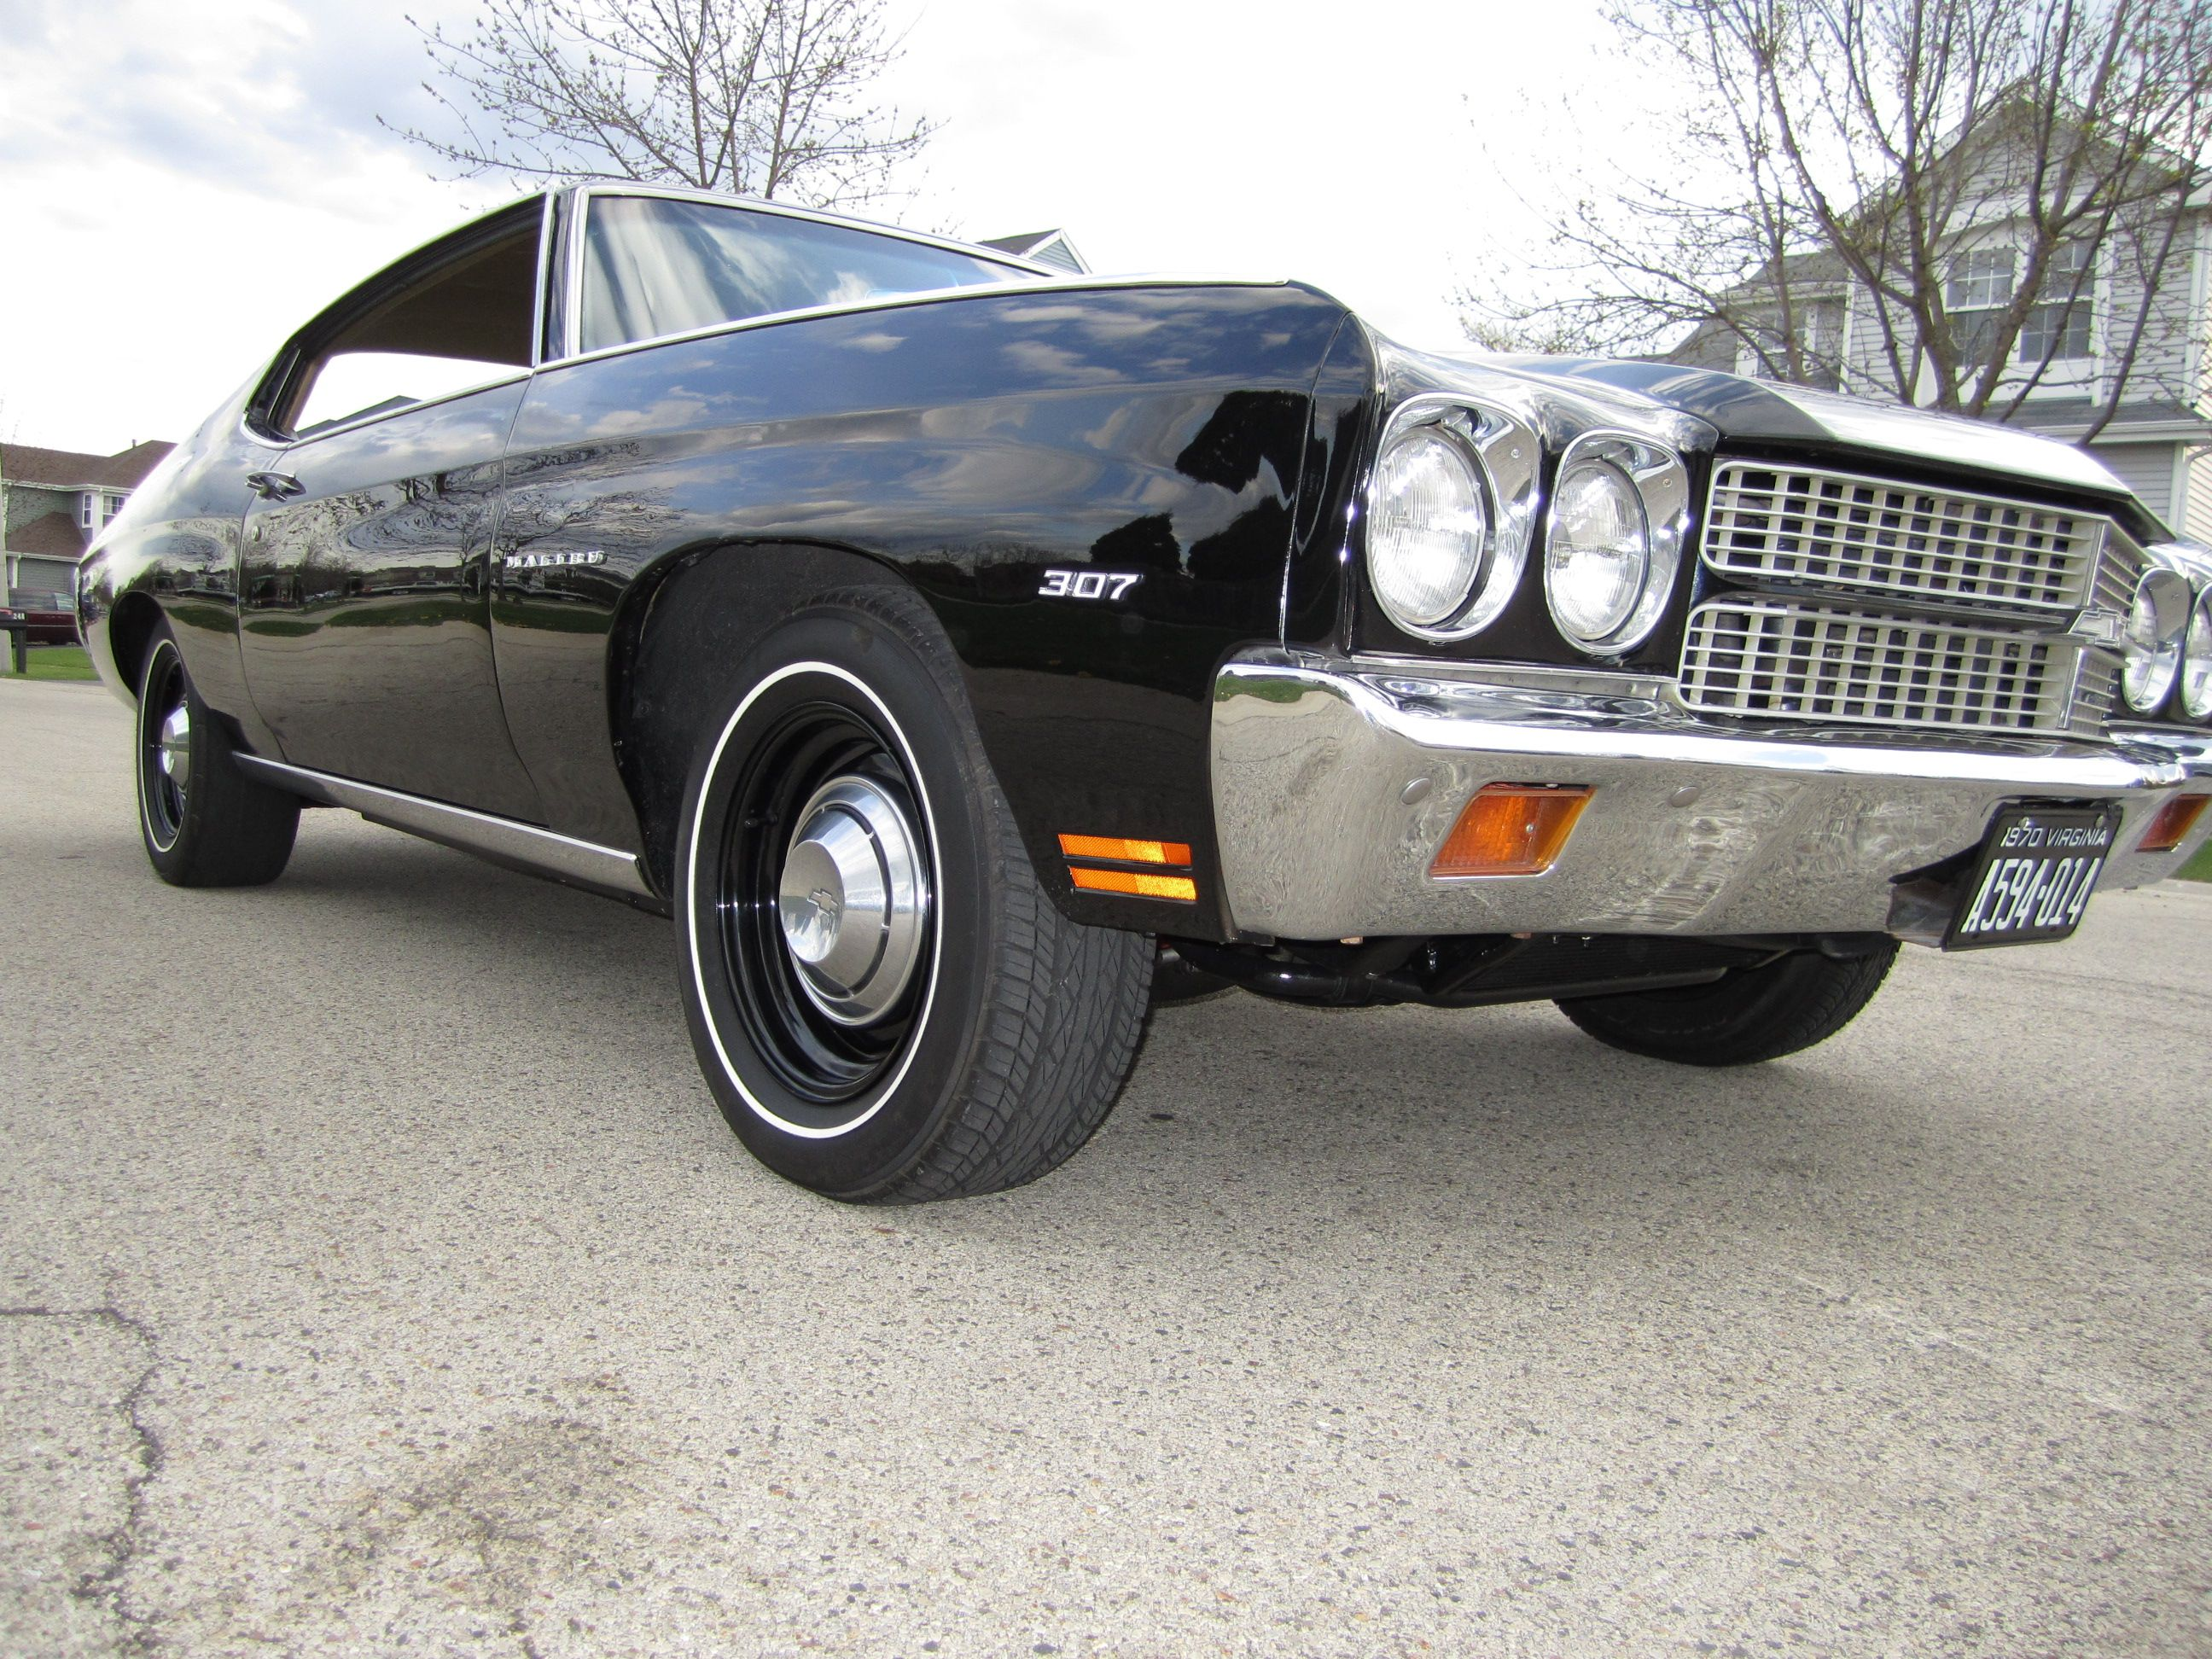 1970 chevelle comfortable cruiser with twin turbo motor and a c